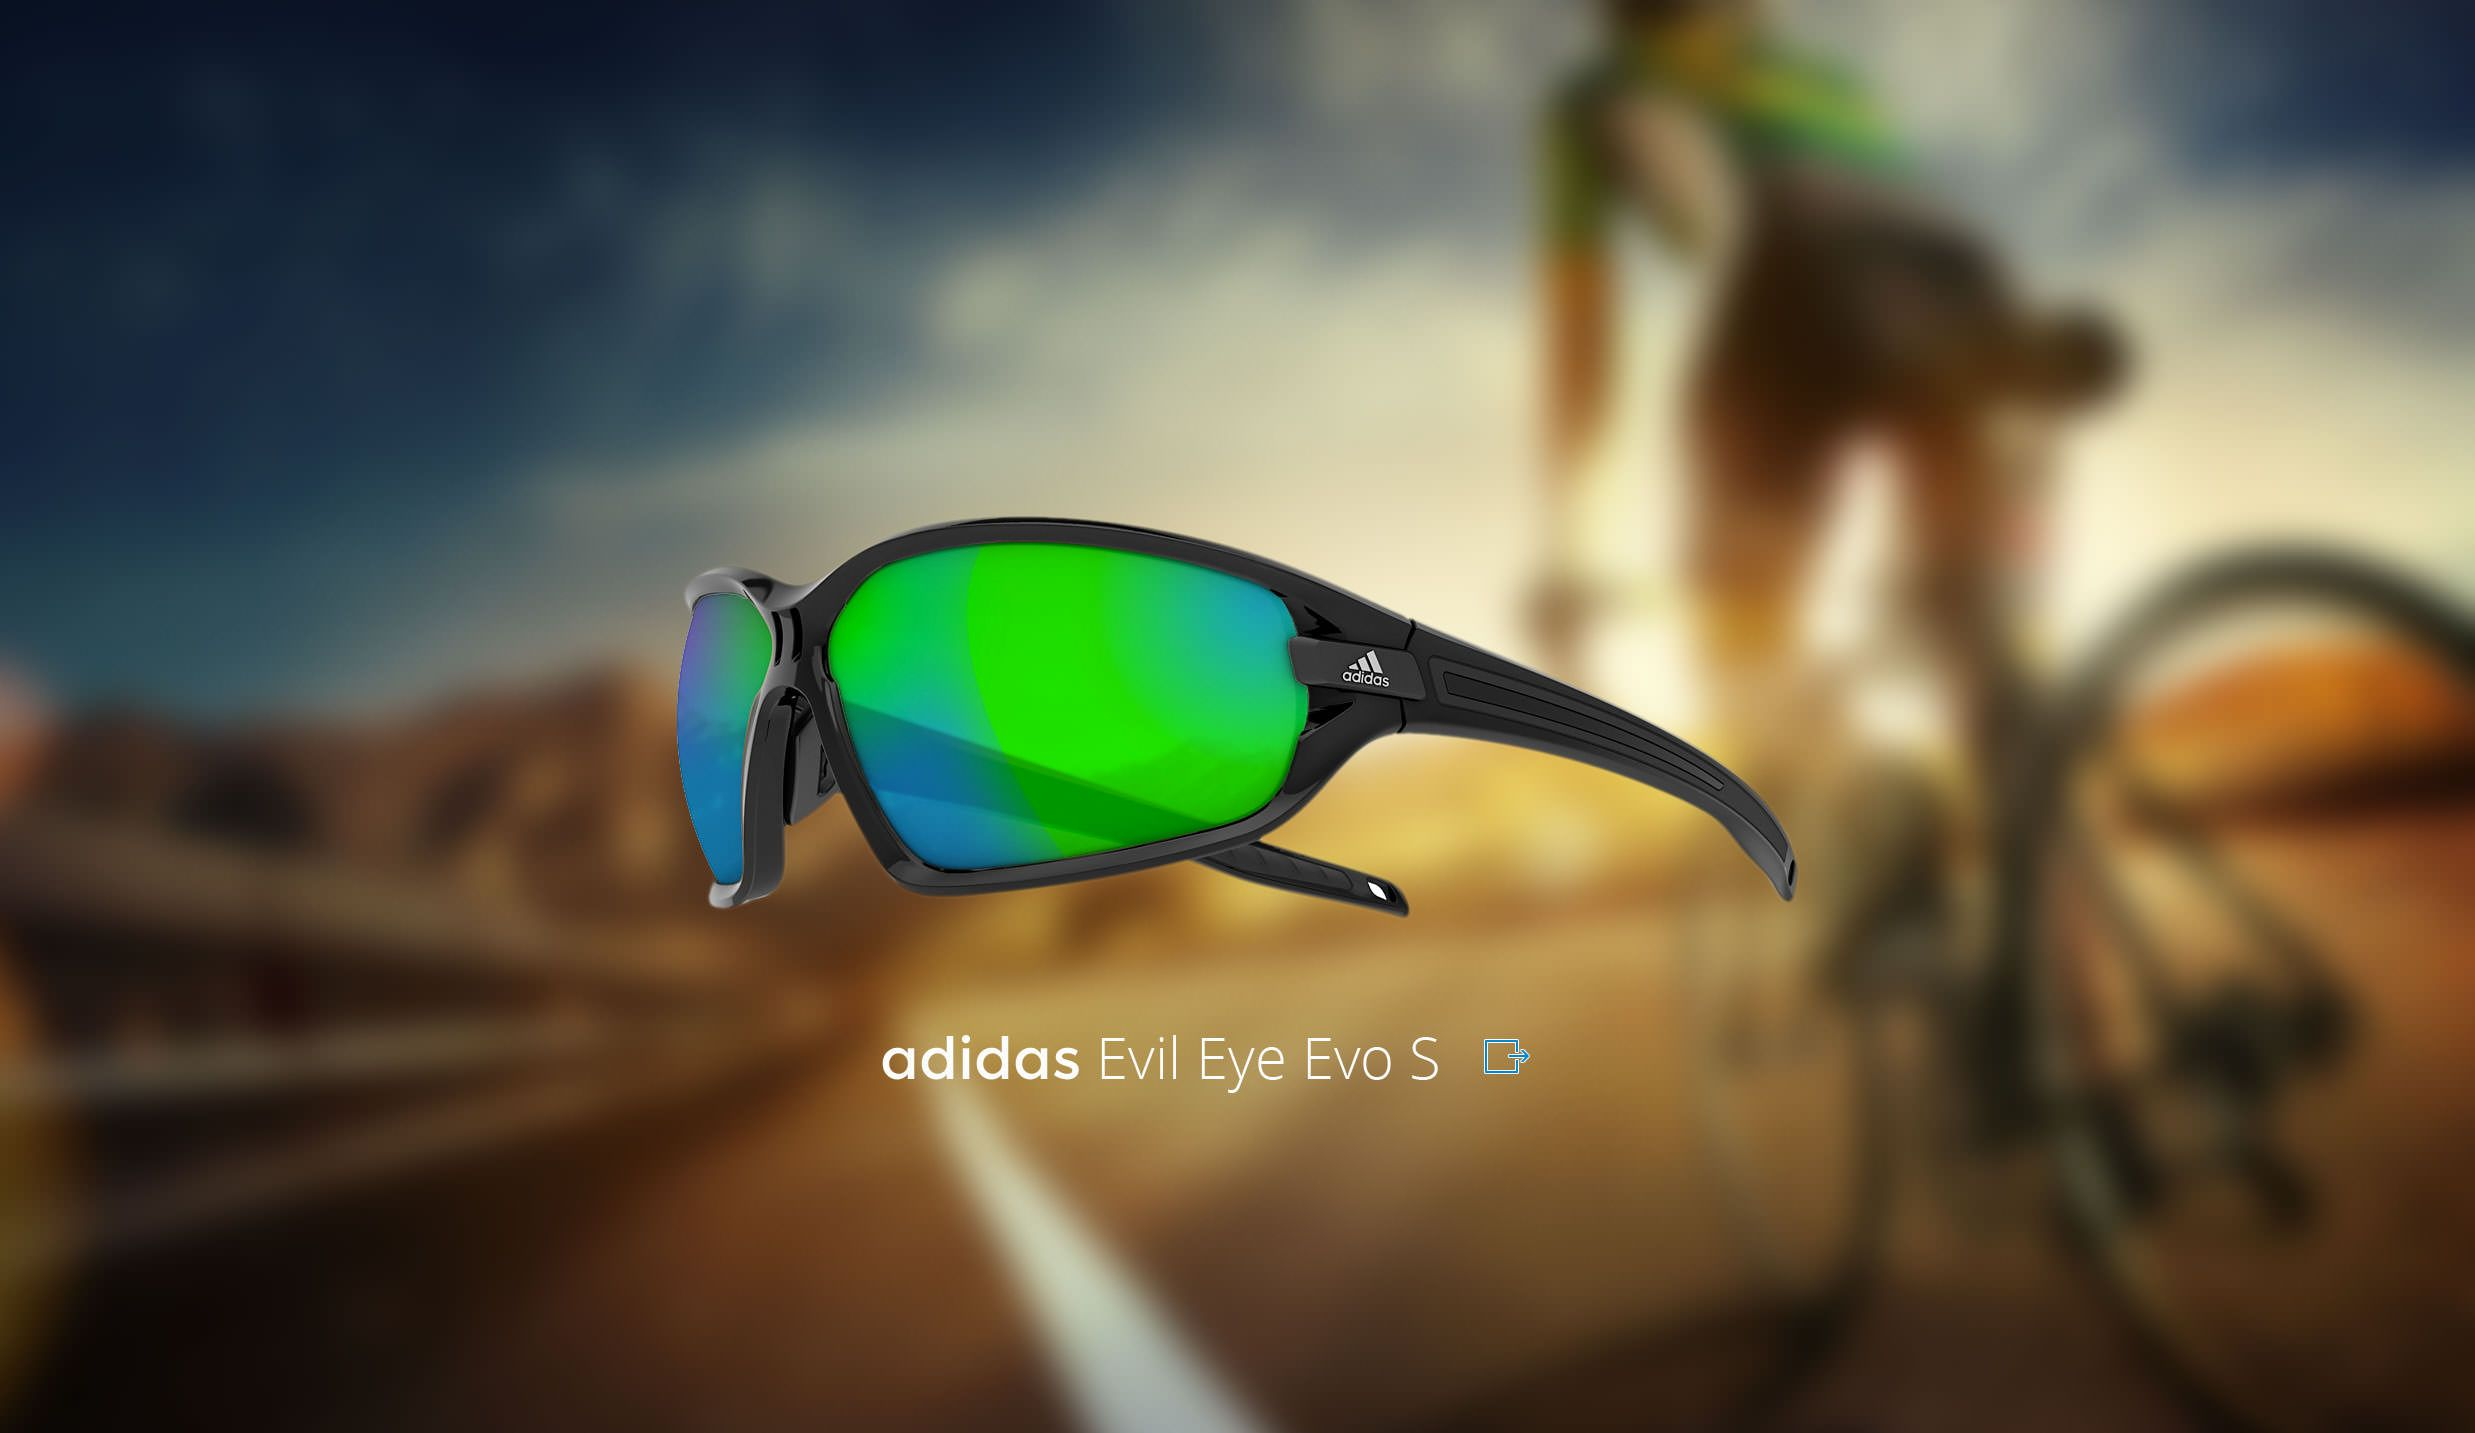 Goldenvision Optometrists are stockists of Adidas eyewear